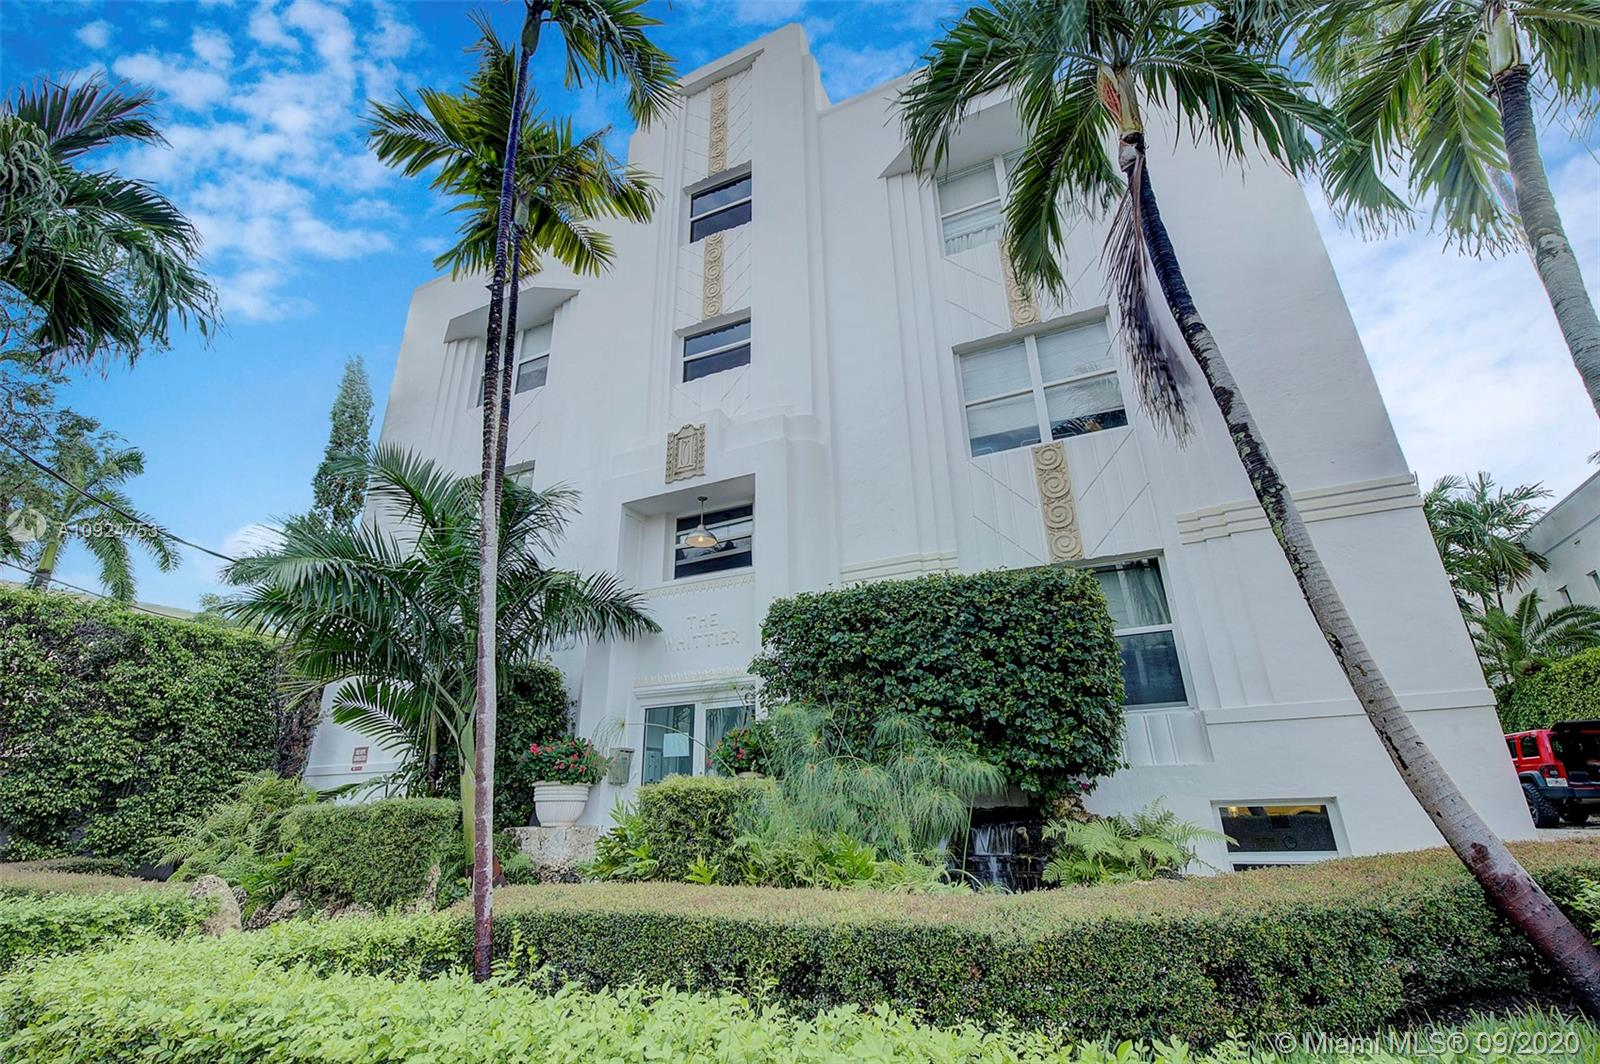 4035 N Meridian Ave #202 For Sale A10924753, FL